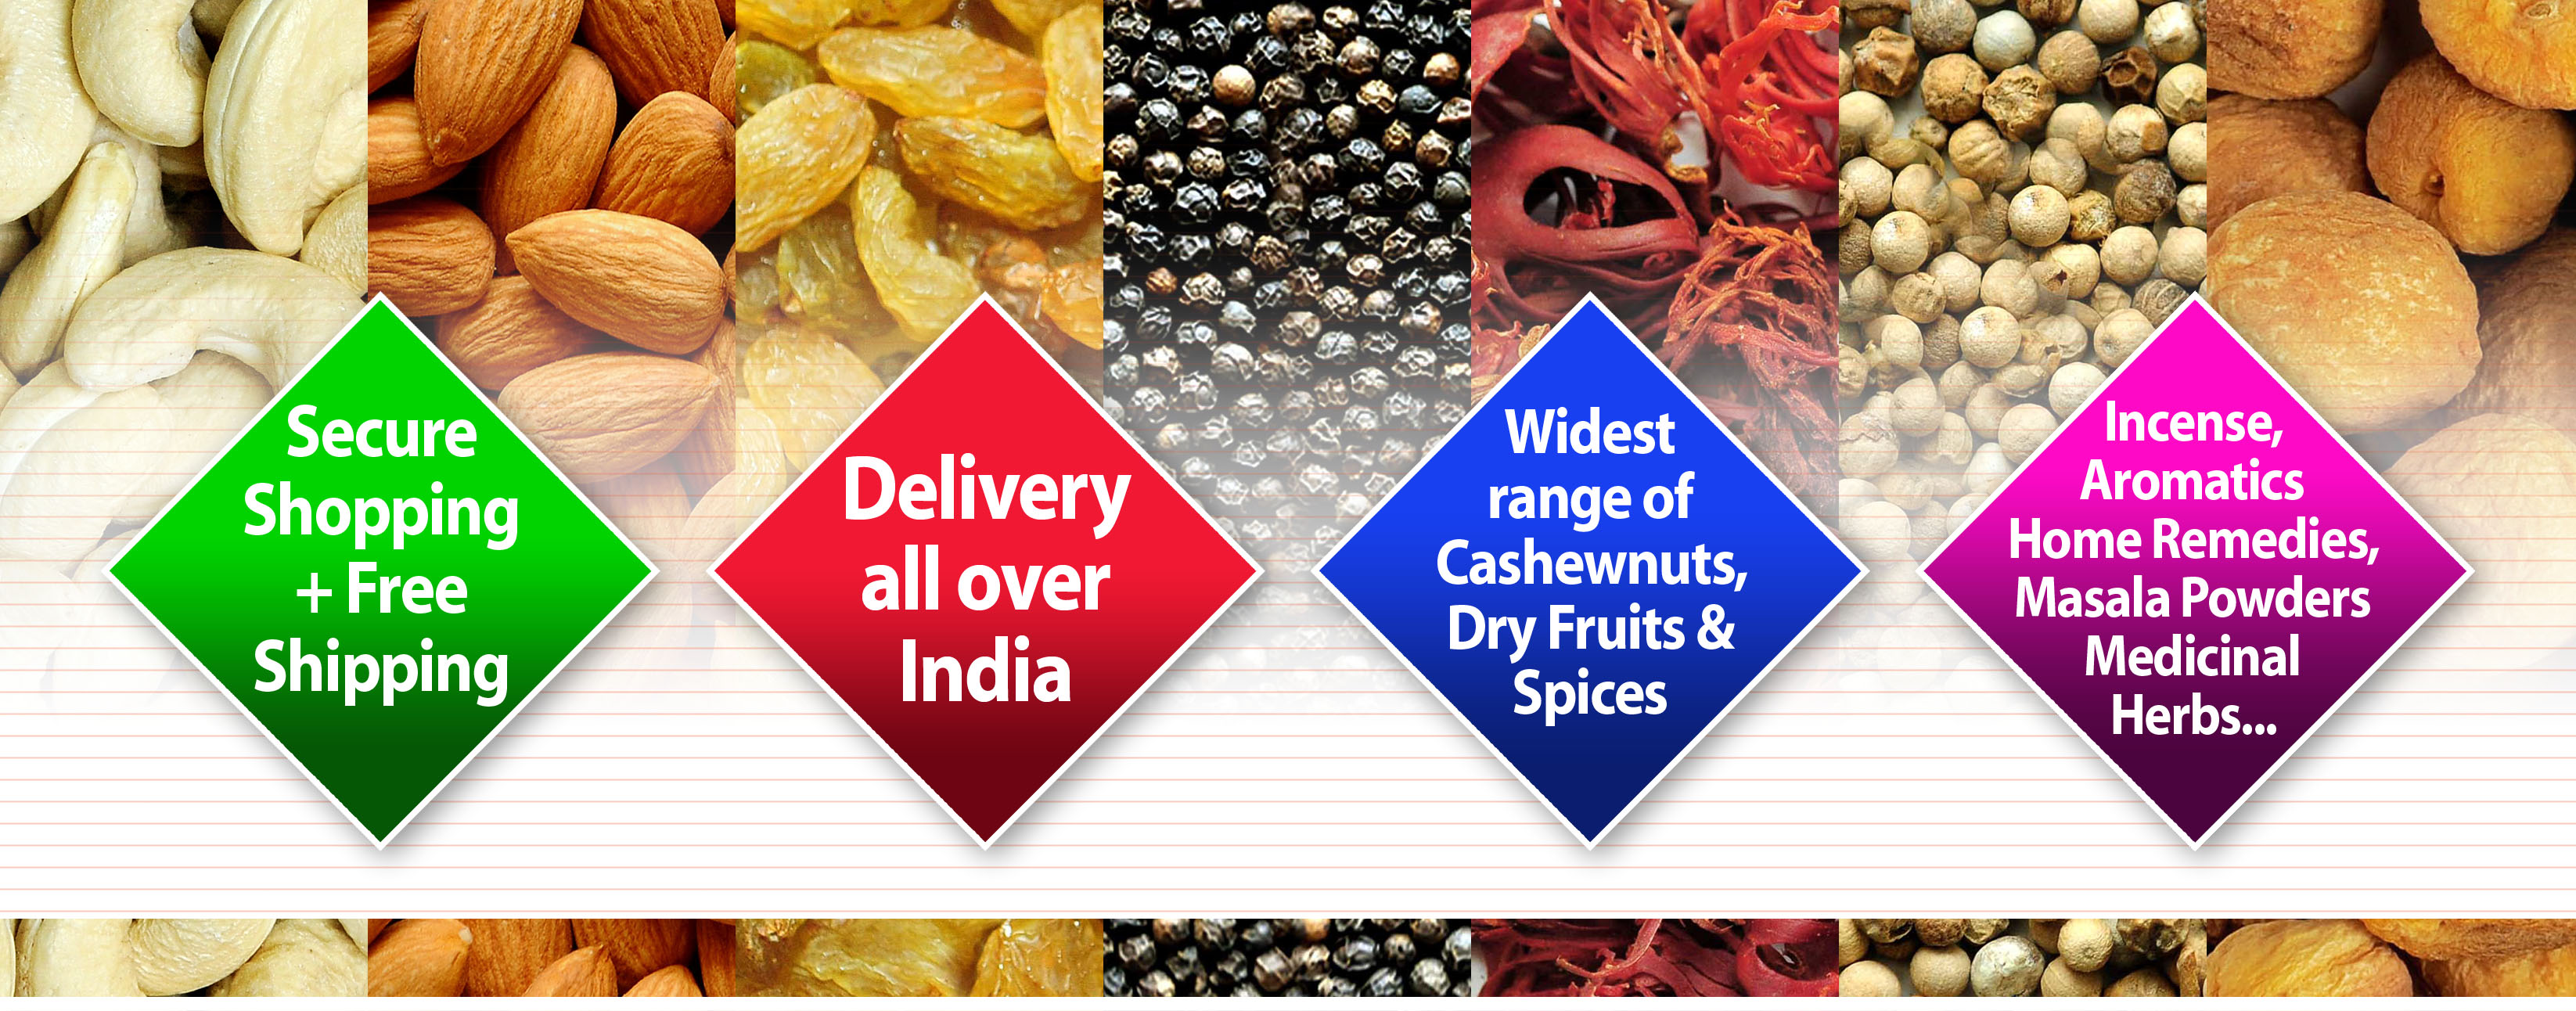 Buy herbs online - Mangalore Spice Buy Spices Herbs Aromatics Dry Fruits And Cashew Nuts Online India